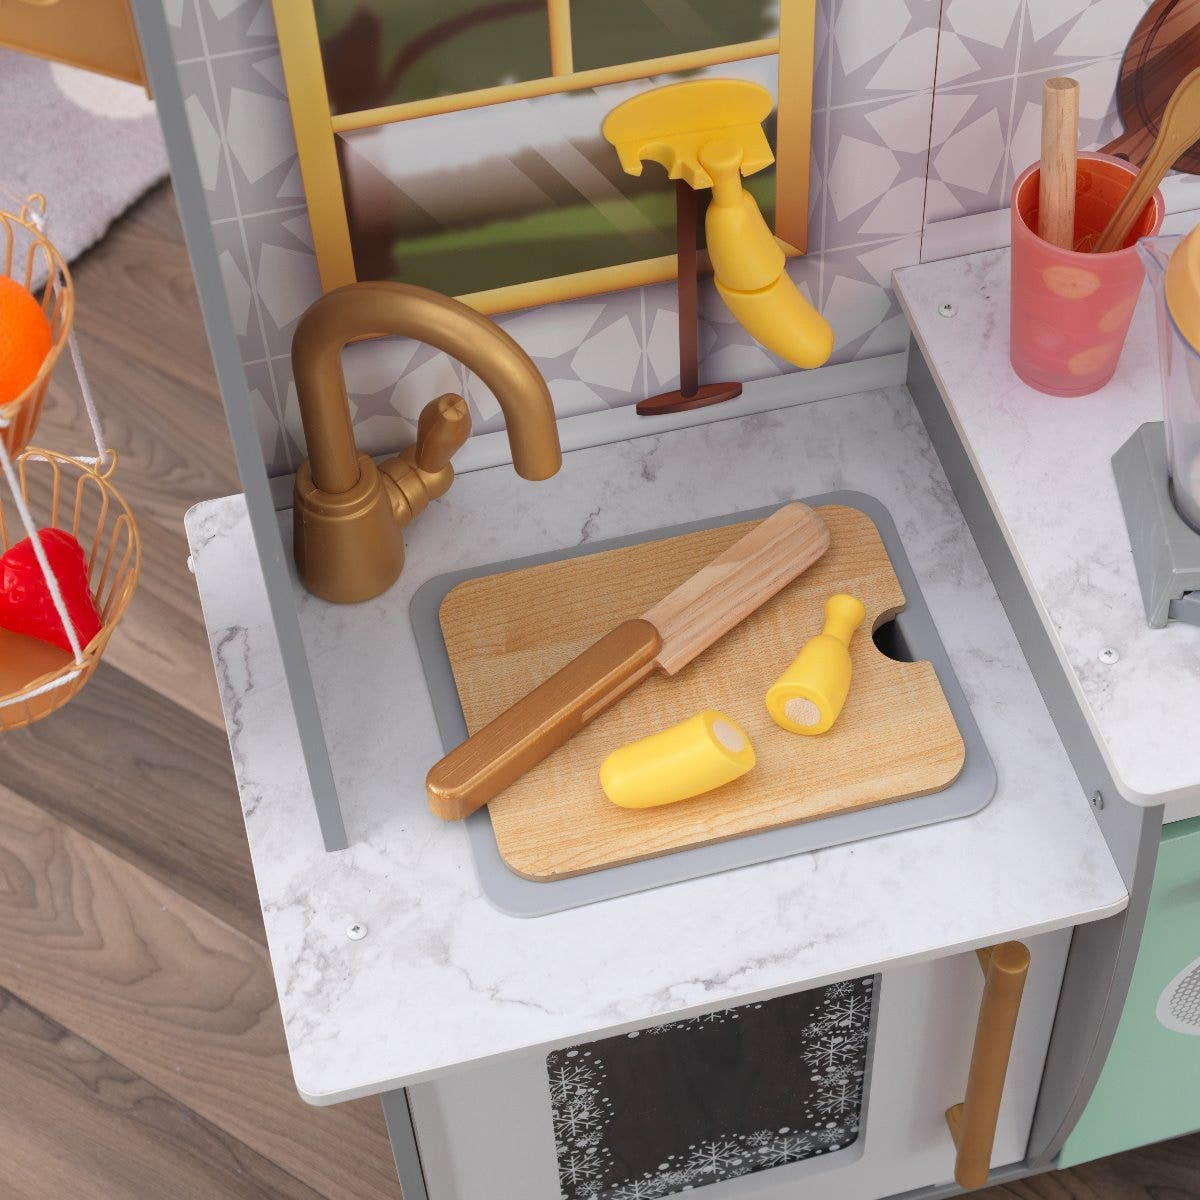 Space-saving cutting board fits over sink; frees up counterspace